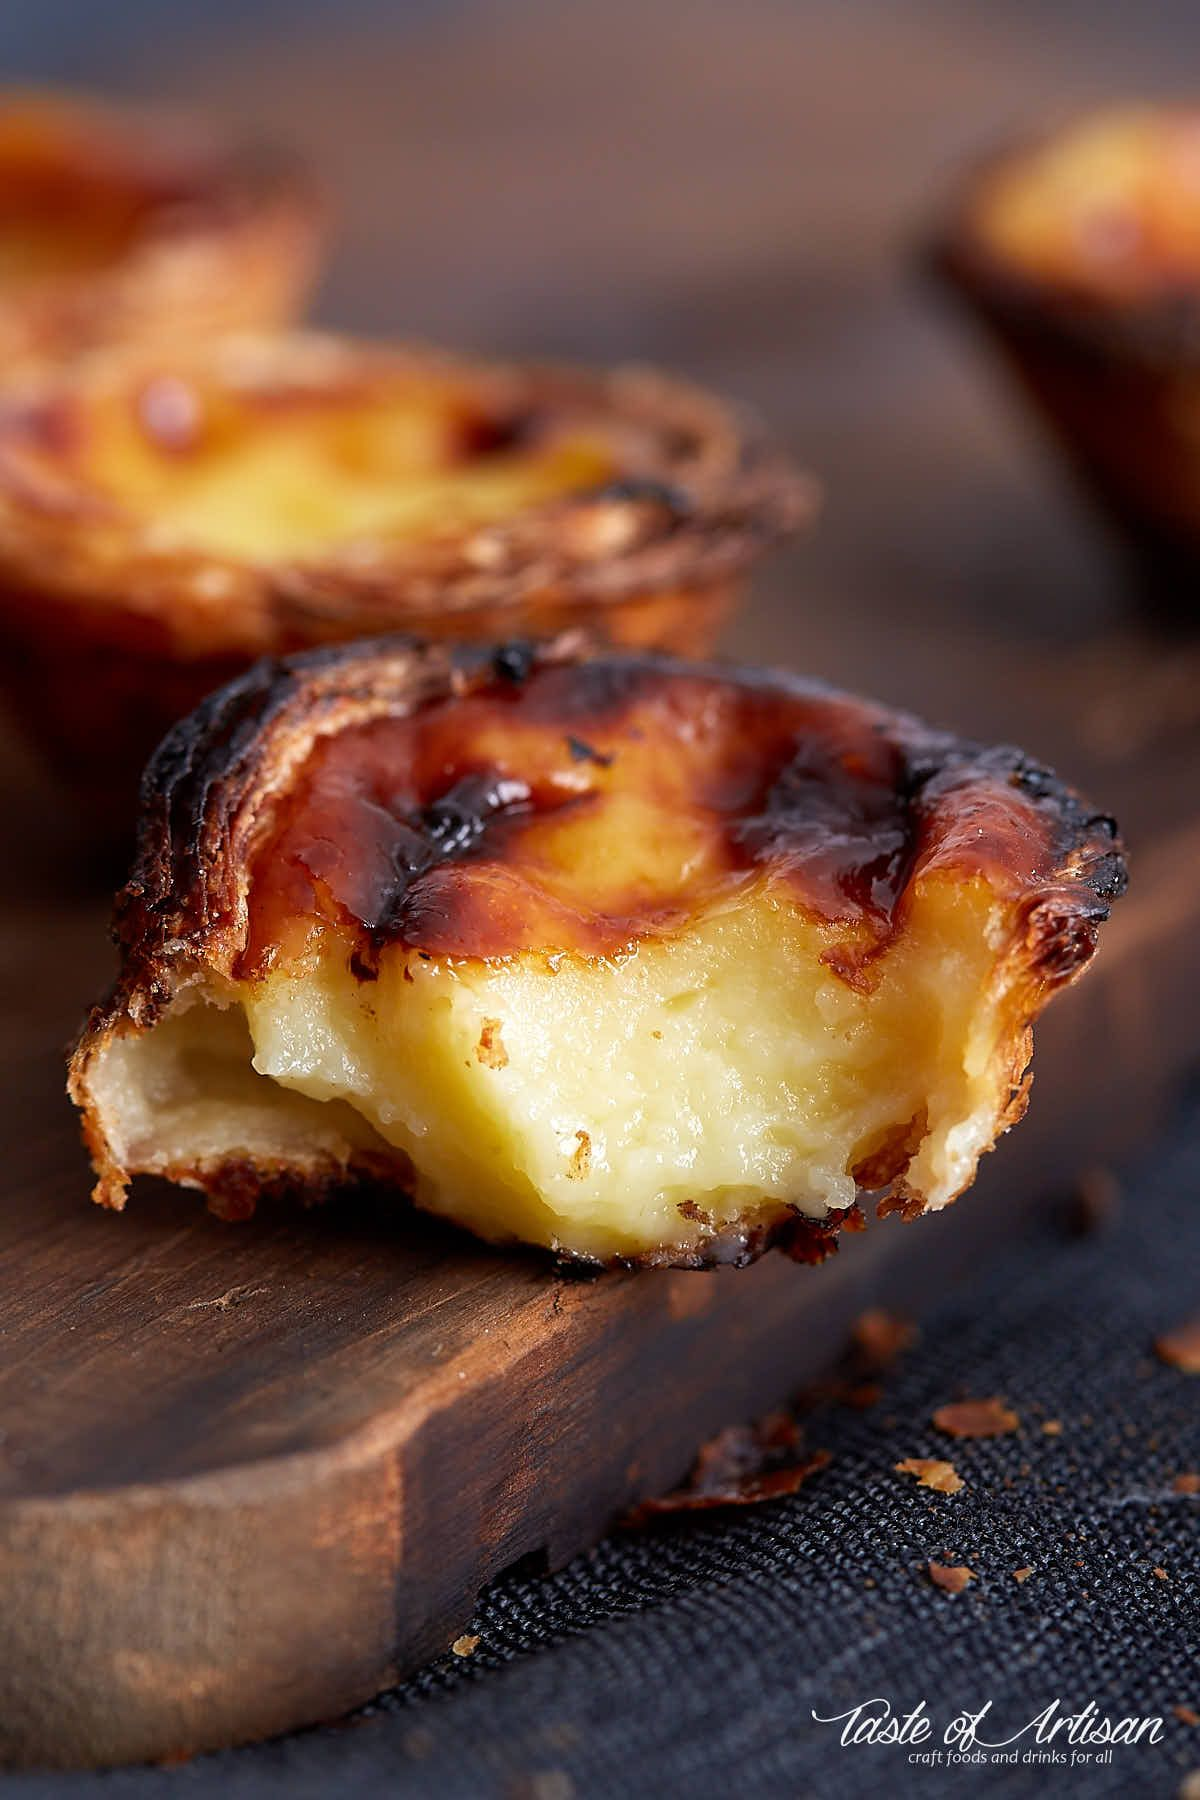 This is the authentic Portuguese Custard Tarts recipe, used by a bakery in Lisbon. Use the 6 tips provided in the recipe to make a perfectly crisp and nicely browned custard tart without hassle.   Taste of Artisan